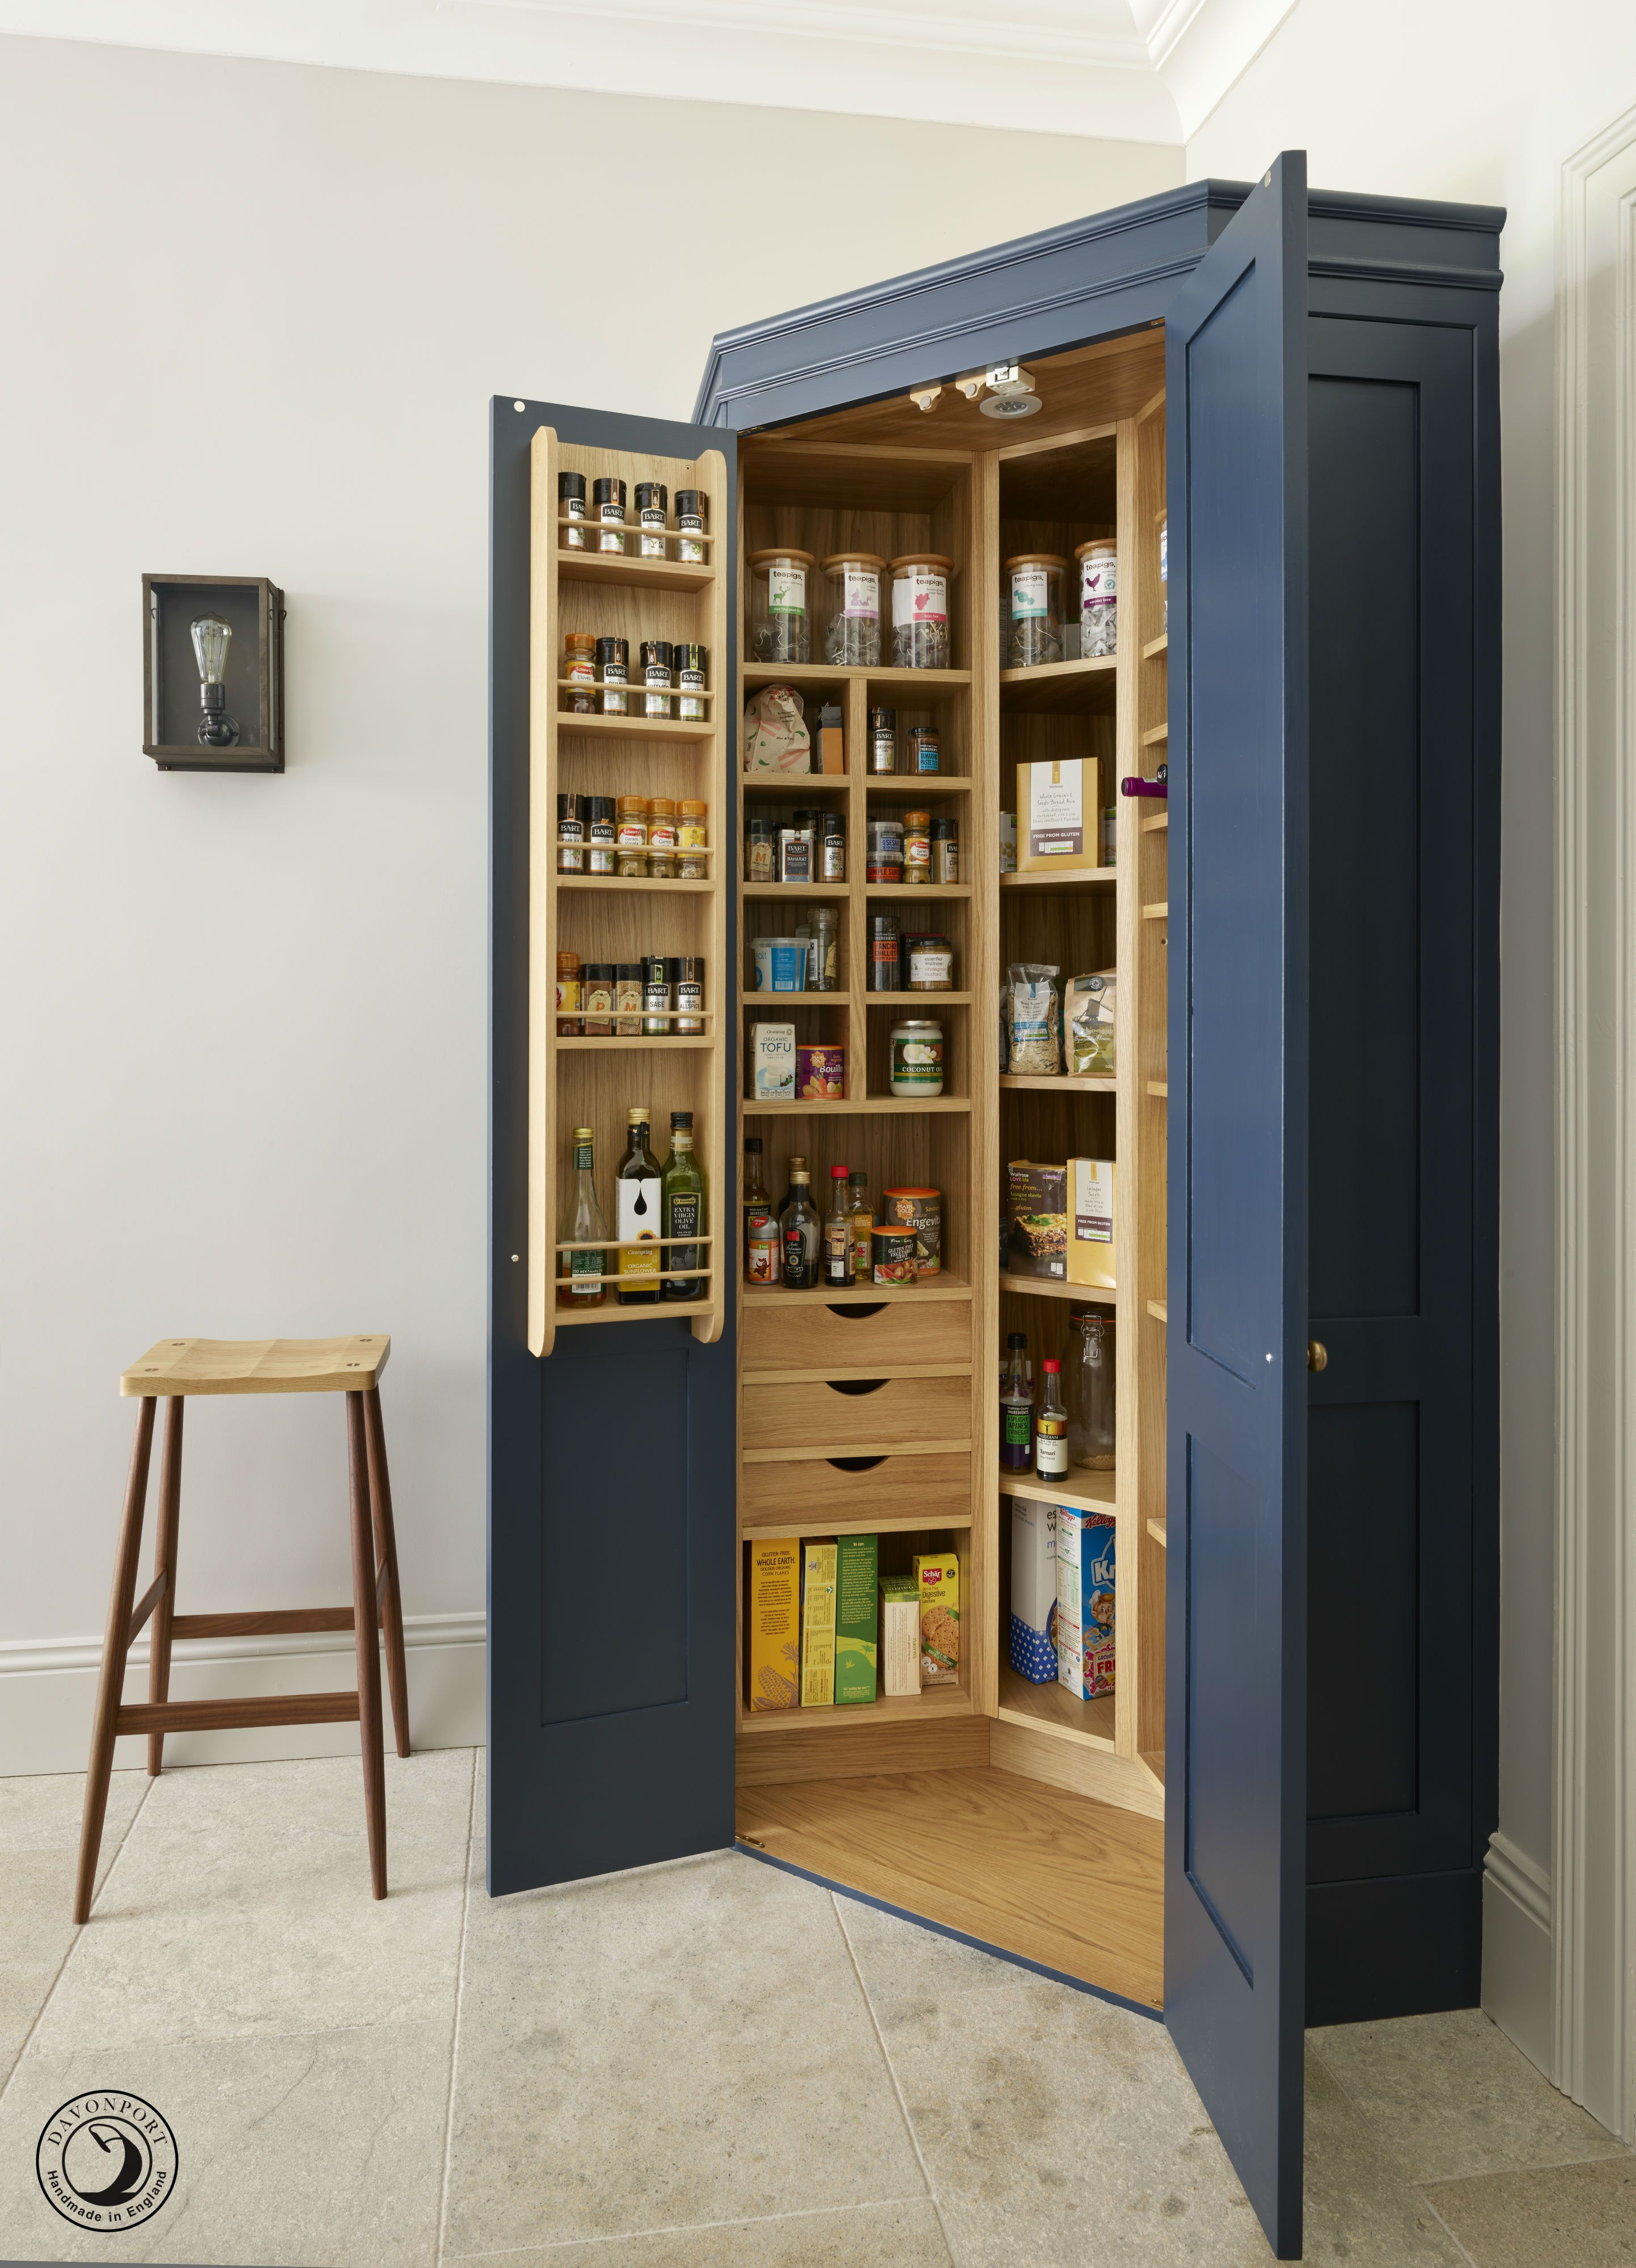 This Cupboard Is Even Better than a Pantry